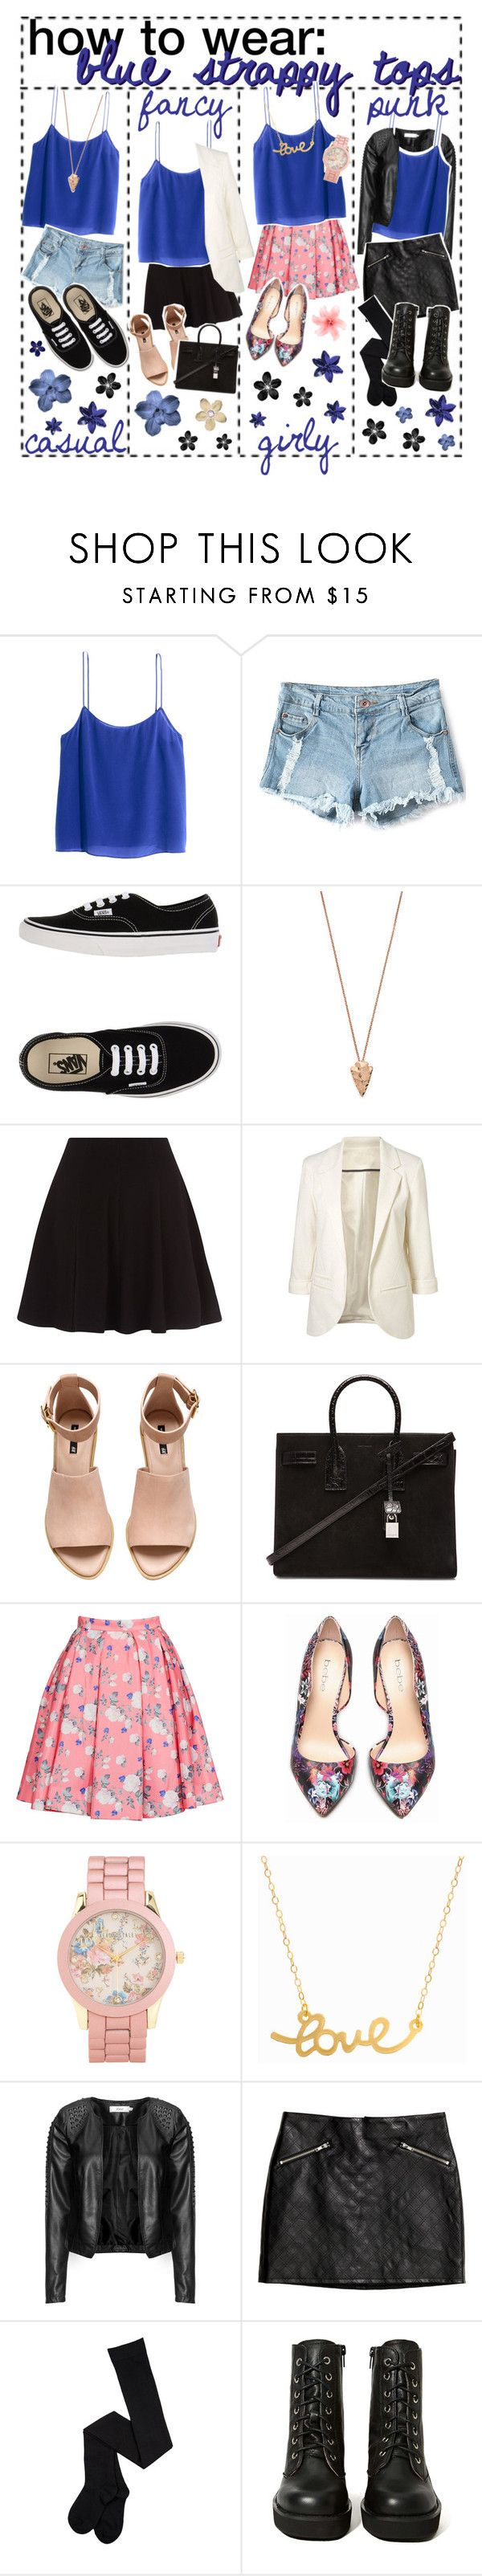 """""""How to wear blue strappy tops"""" by dream-girl-icons ❤ liked on Polyvore featuring H&M, Vans, Pamela Love, SHAN, Yves Saint Laurent, ERIN Erin Fetherston, Bebe, Aéropostale, Minnie Grace and Zizzi"""